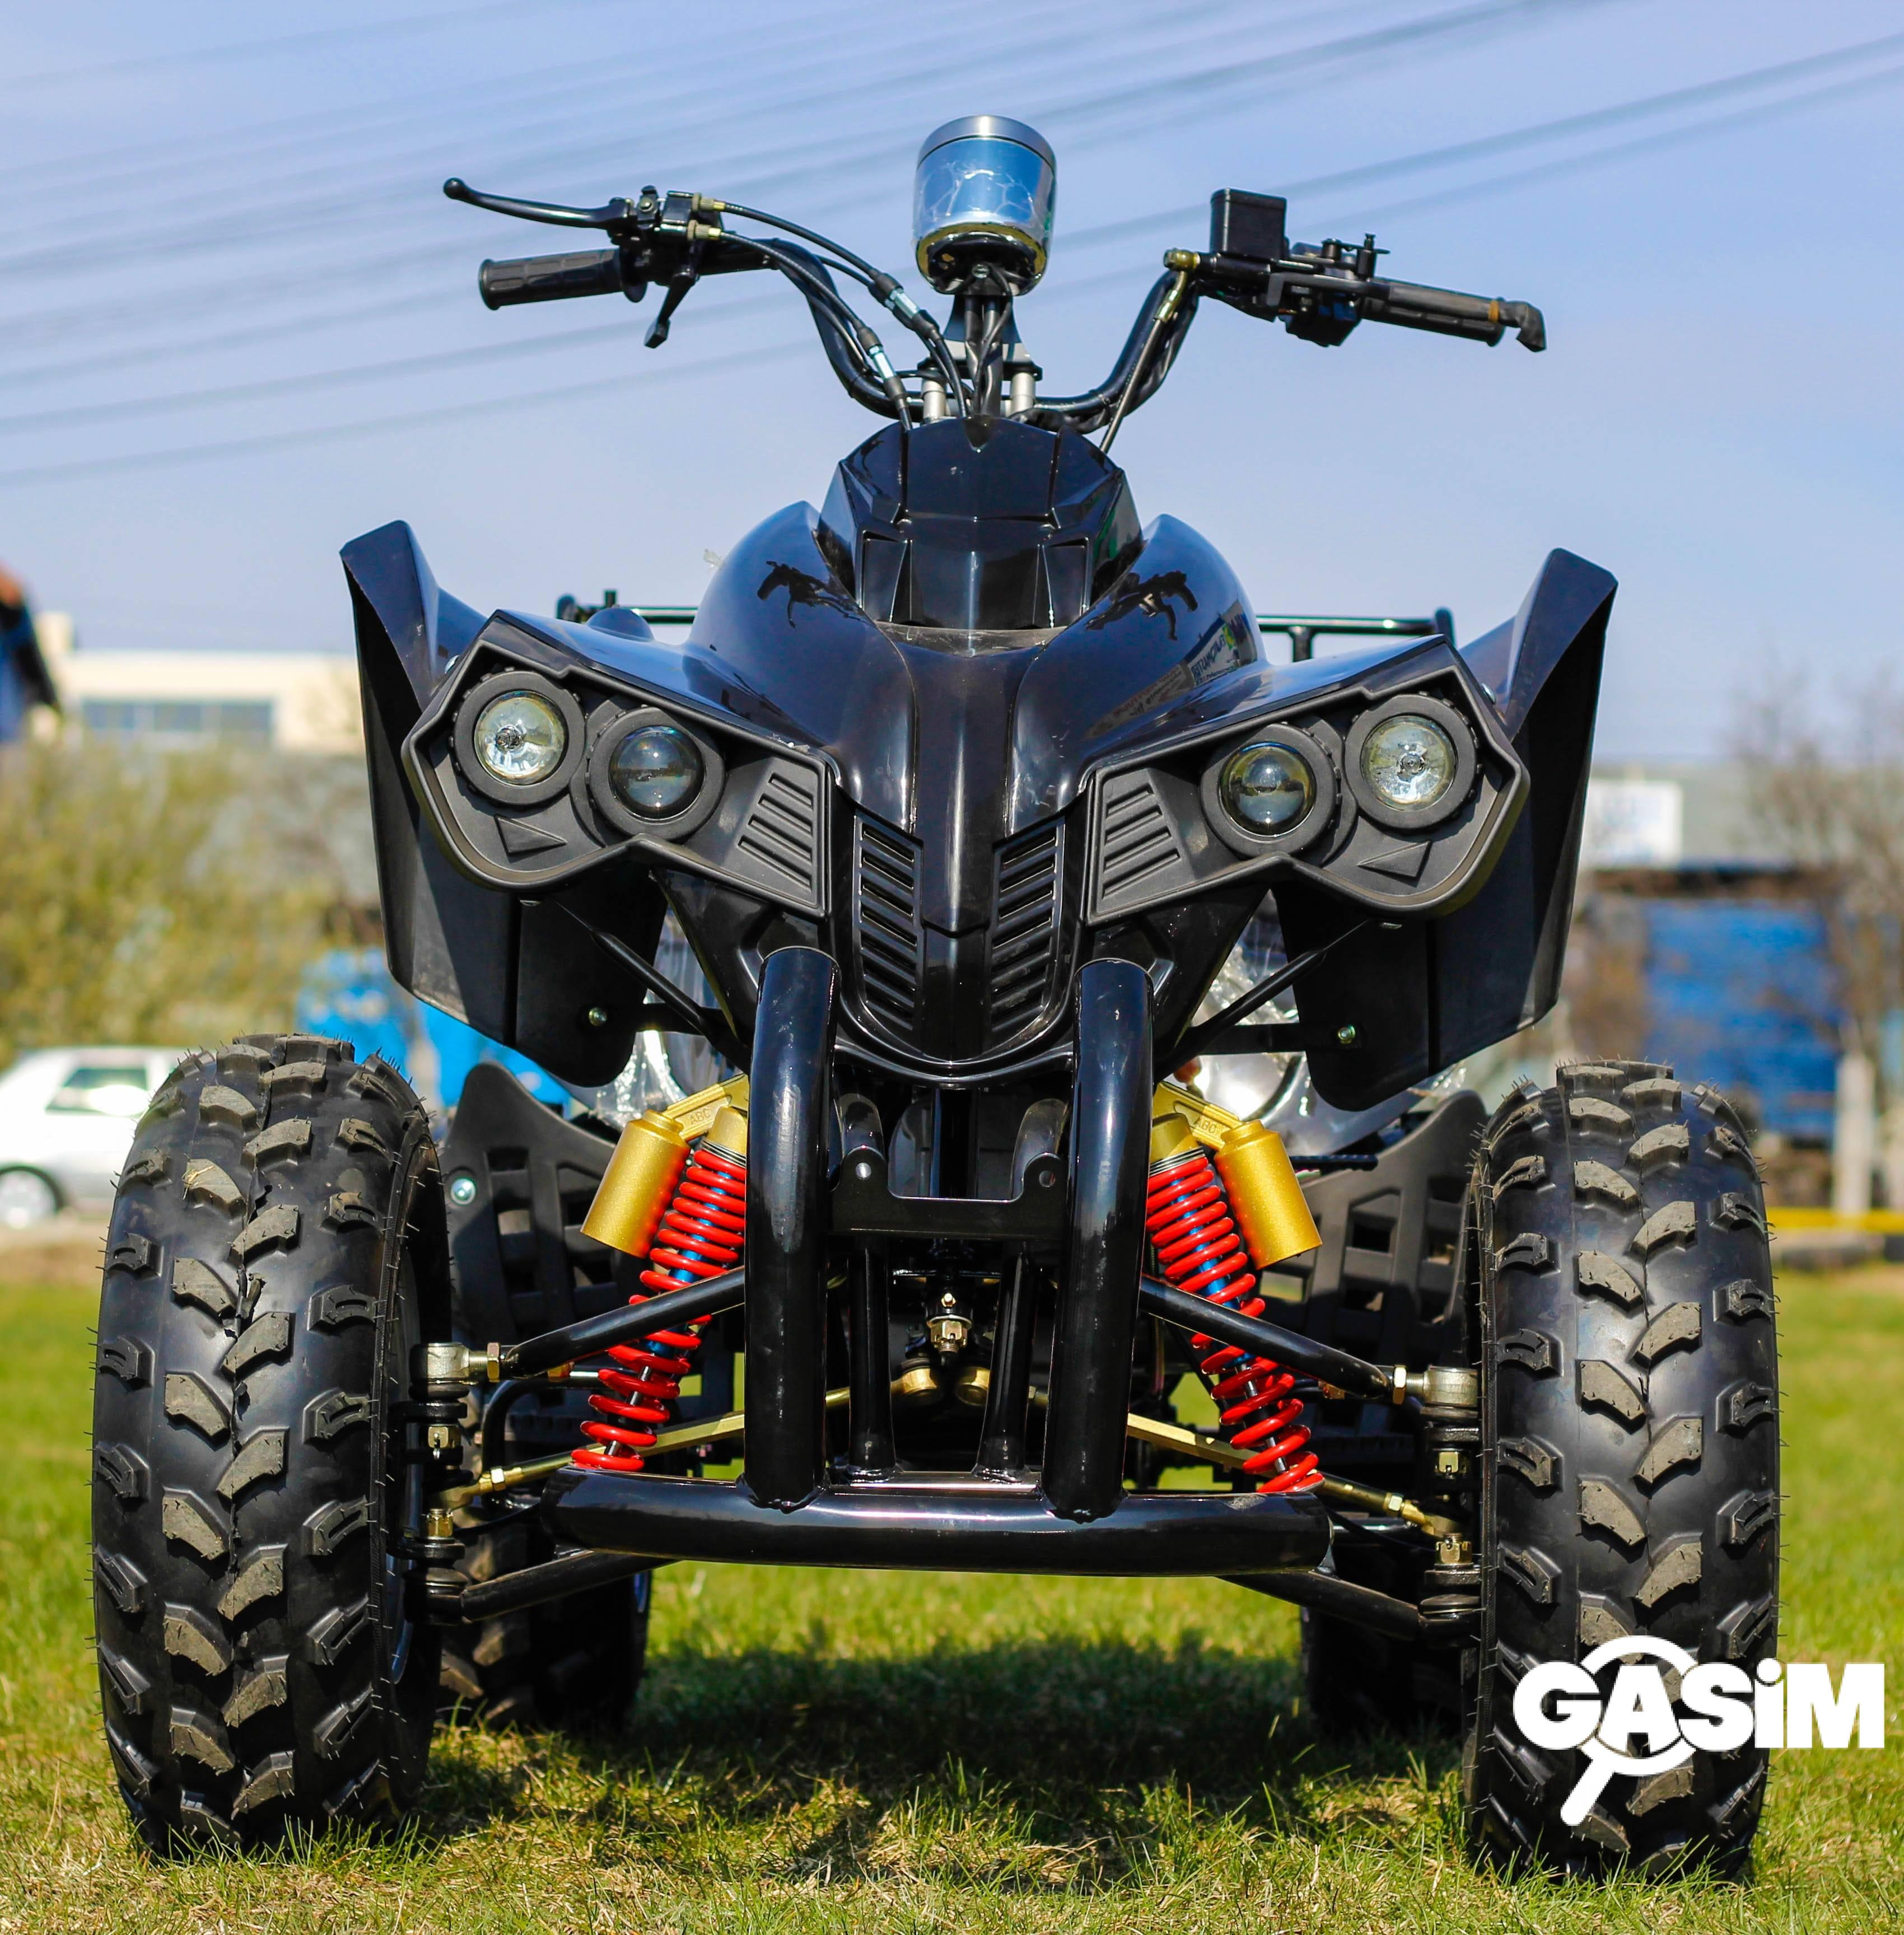 Atv 250Cc Akp Warrior Deluxe Manual/Roti De 10&rdq